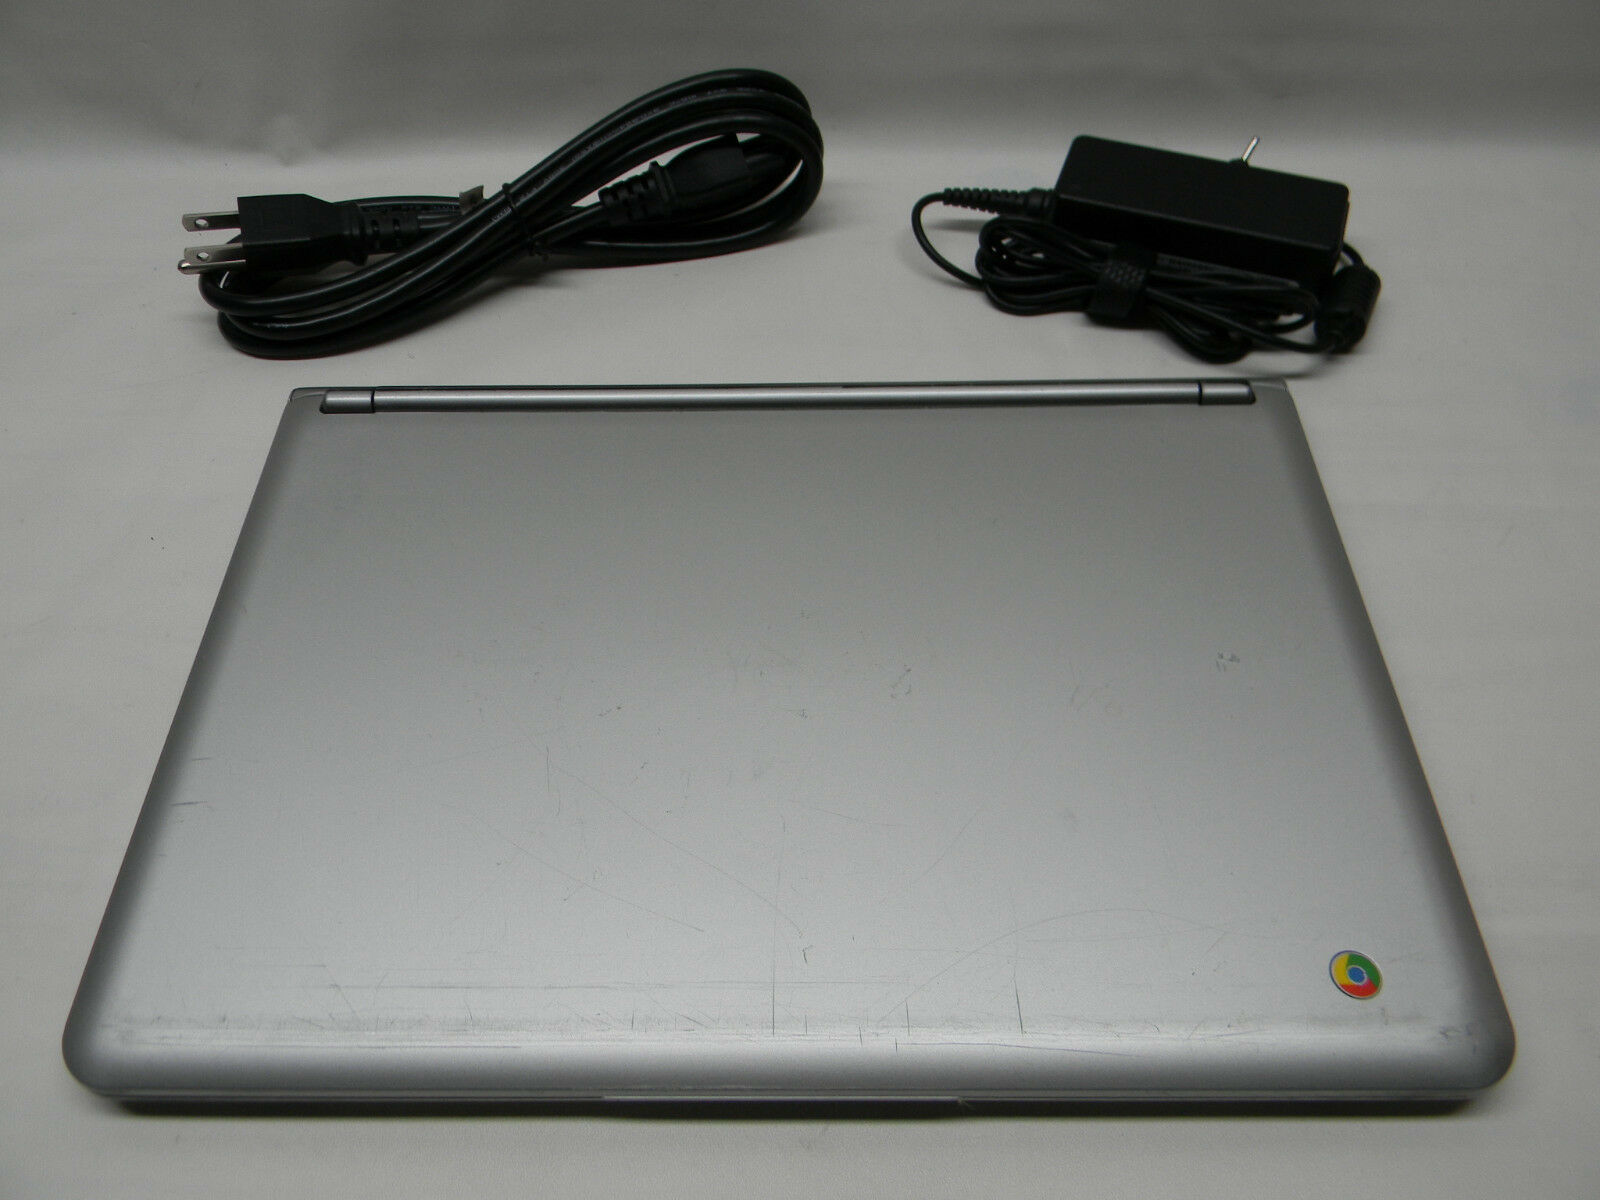 Samsung Chromebook  Model XE303C12 Wifi Web Cam  #547